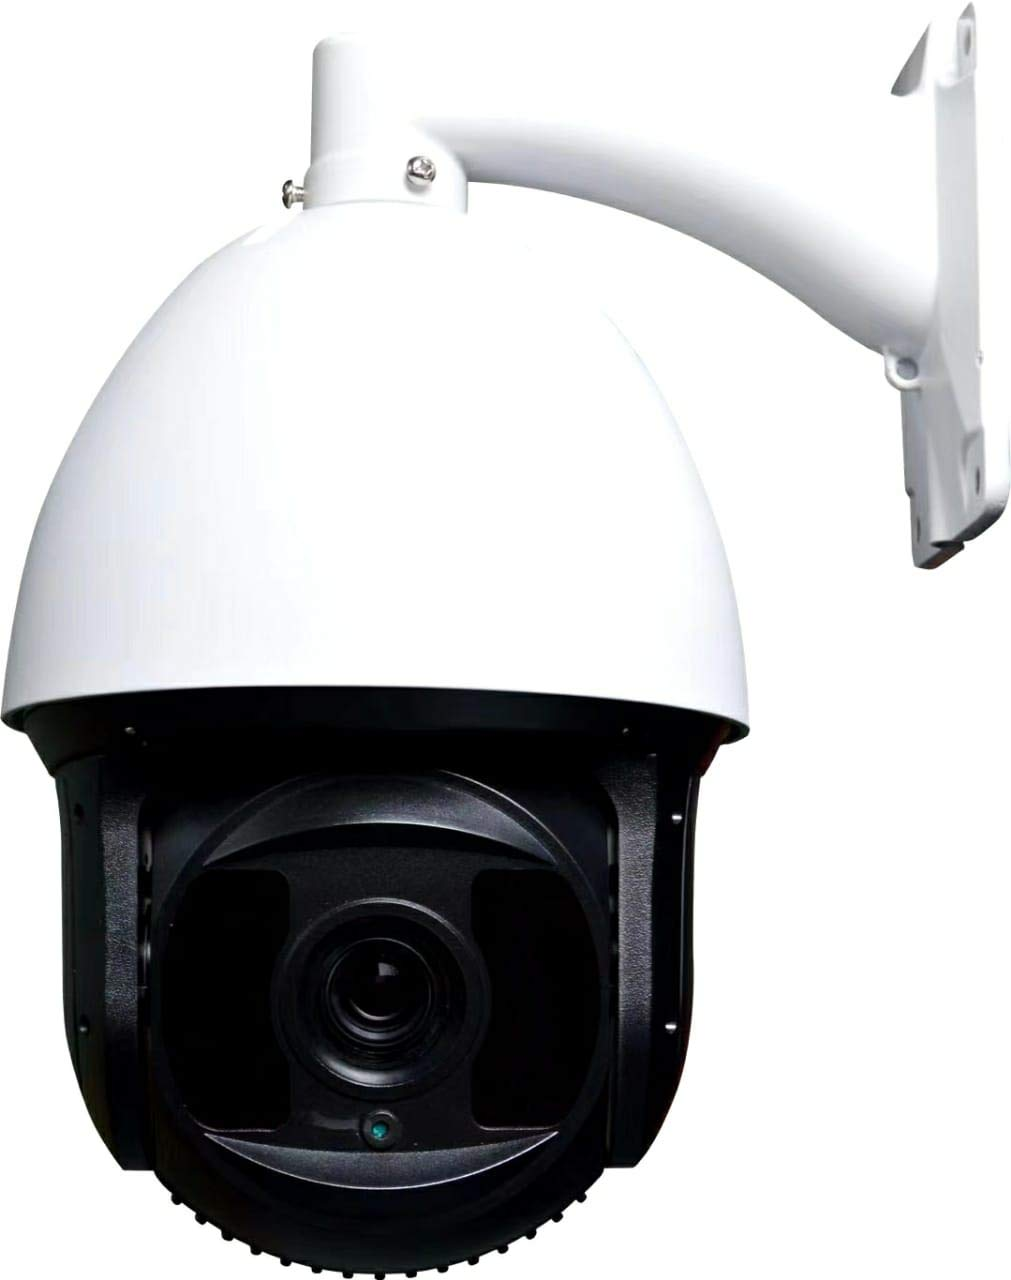 Buy Active Pixel IP 36X Optical Zoom, 5 MP IP PTZ, 450ft Night Vision CCTV  Outdoor Security Speed Dome Cameras (White) Online at Low Price in India |  Active Pixel Camera Reviews